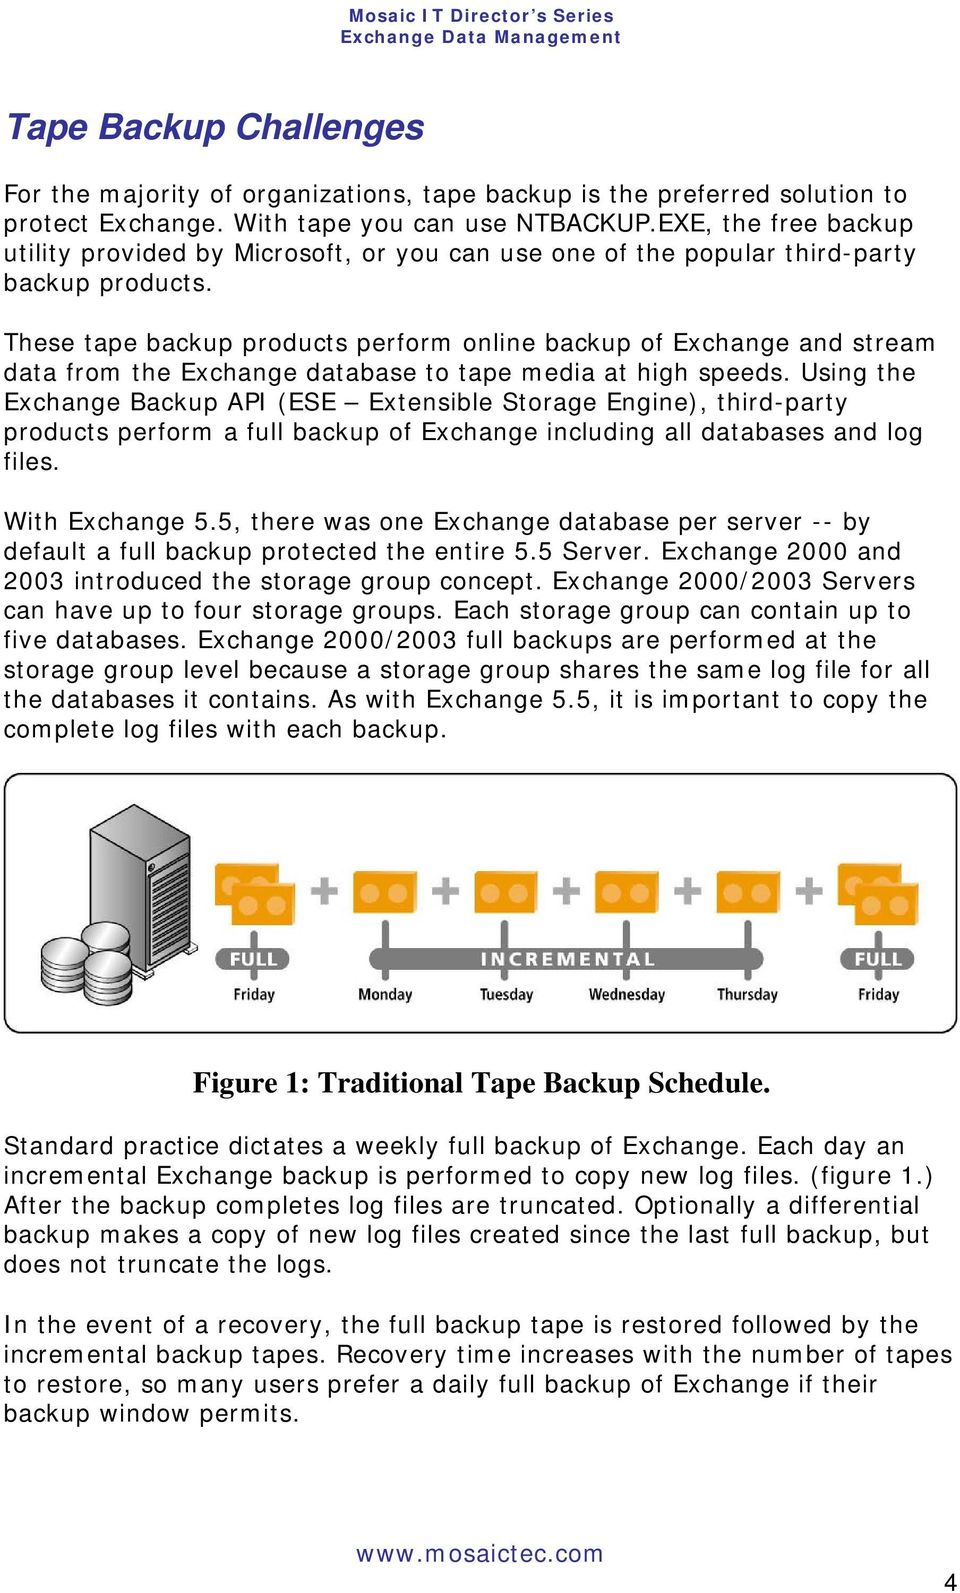 These tape backup products perform online backup of Exchange and stream data from the Exchange database to tape media at high speeds.